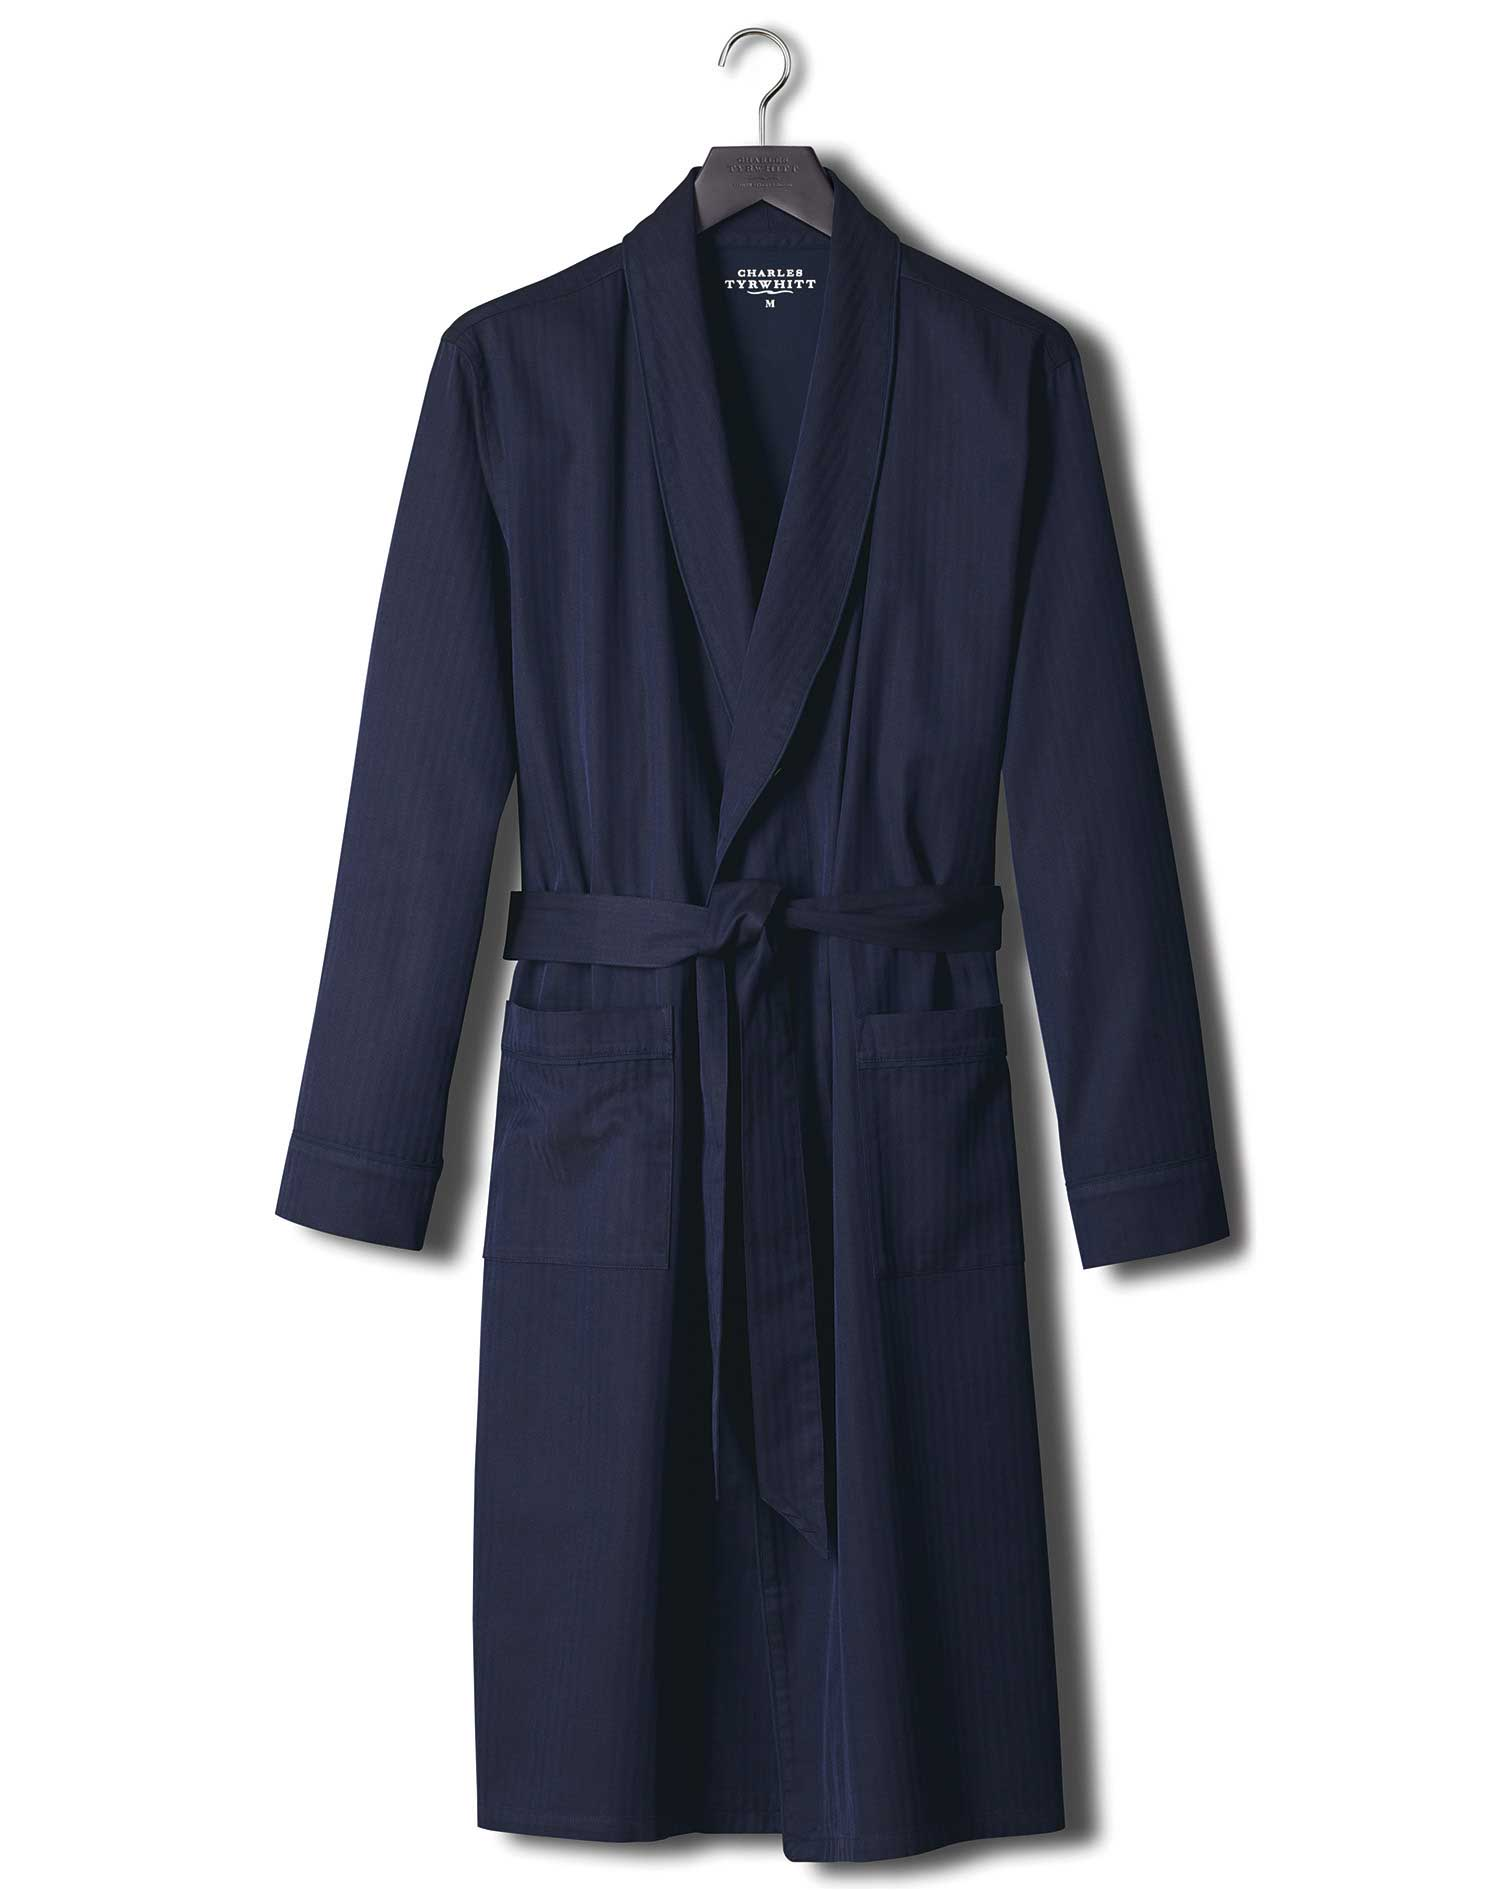 Navy Herringbone Robe Size XL by Charles Tyrwhitt